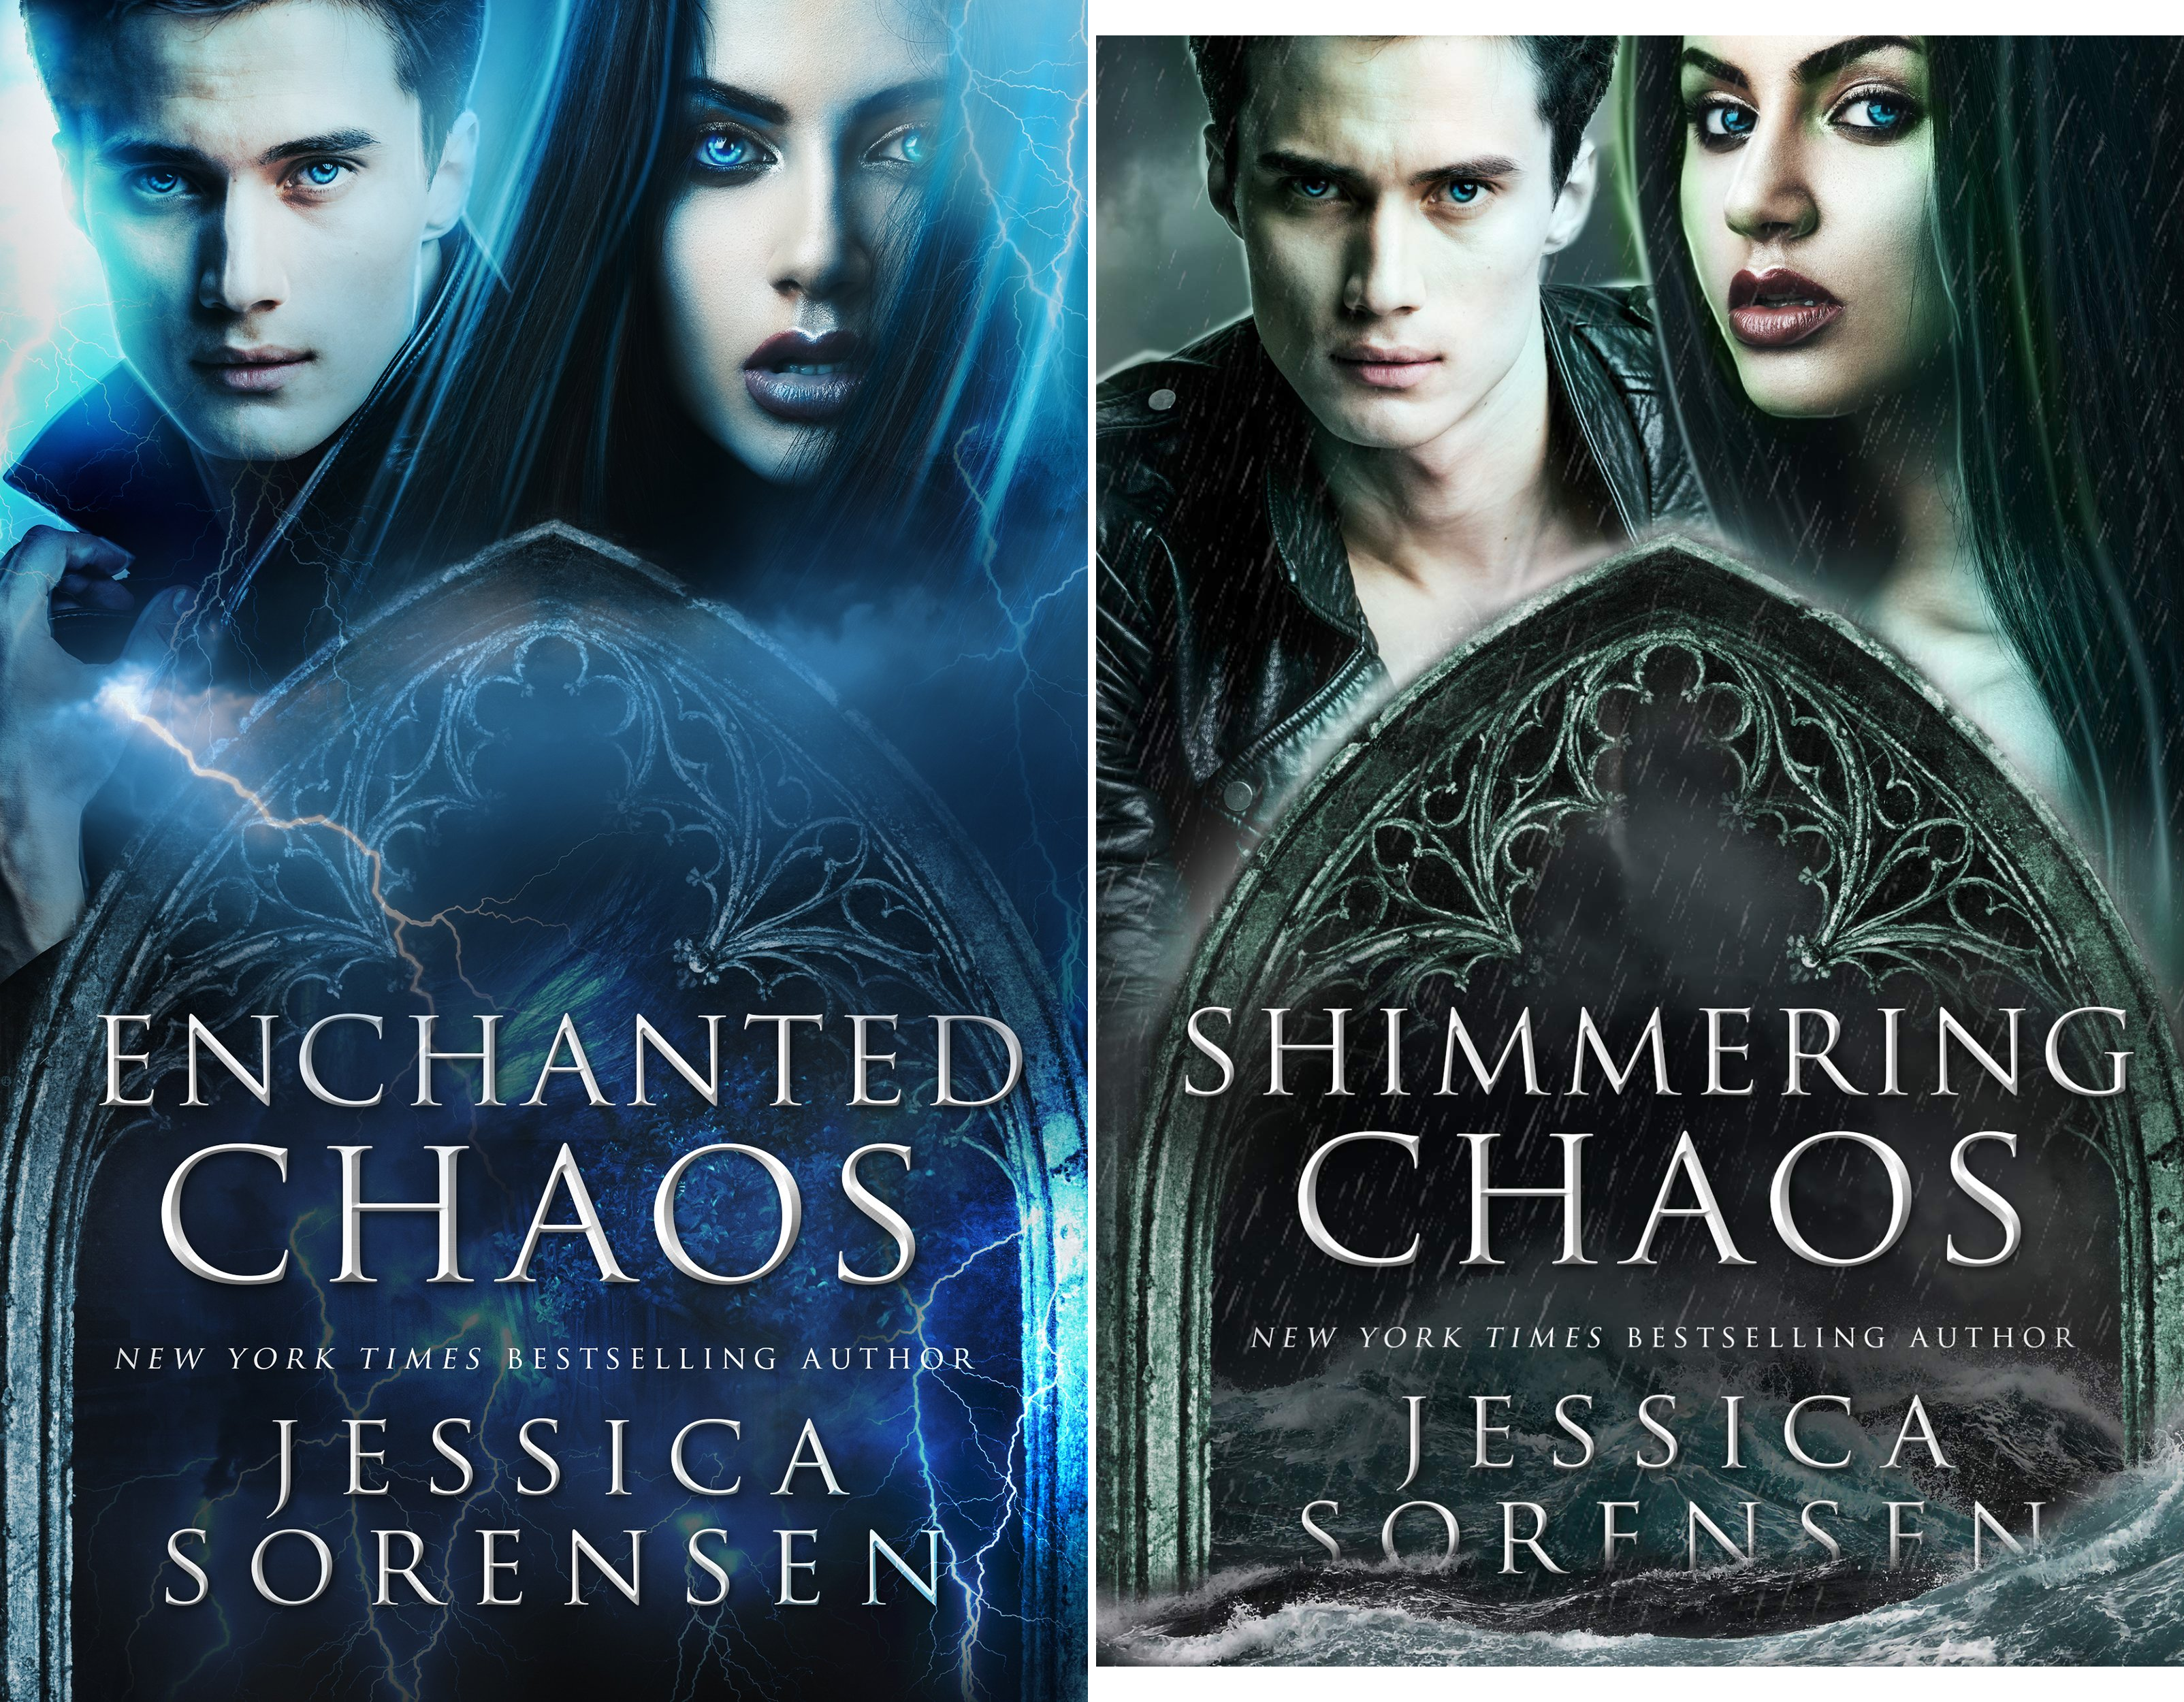 Which is the best enchanted chaos book 2?